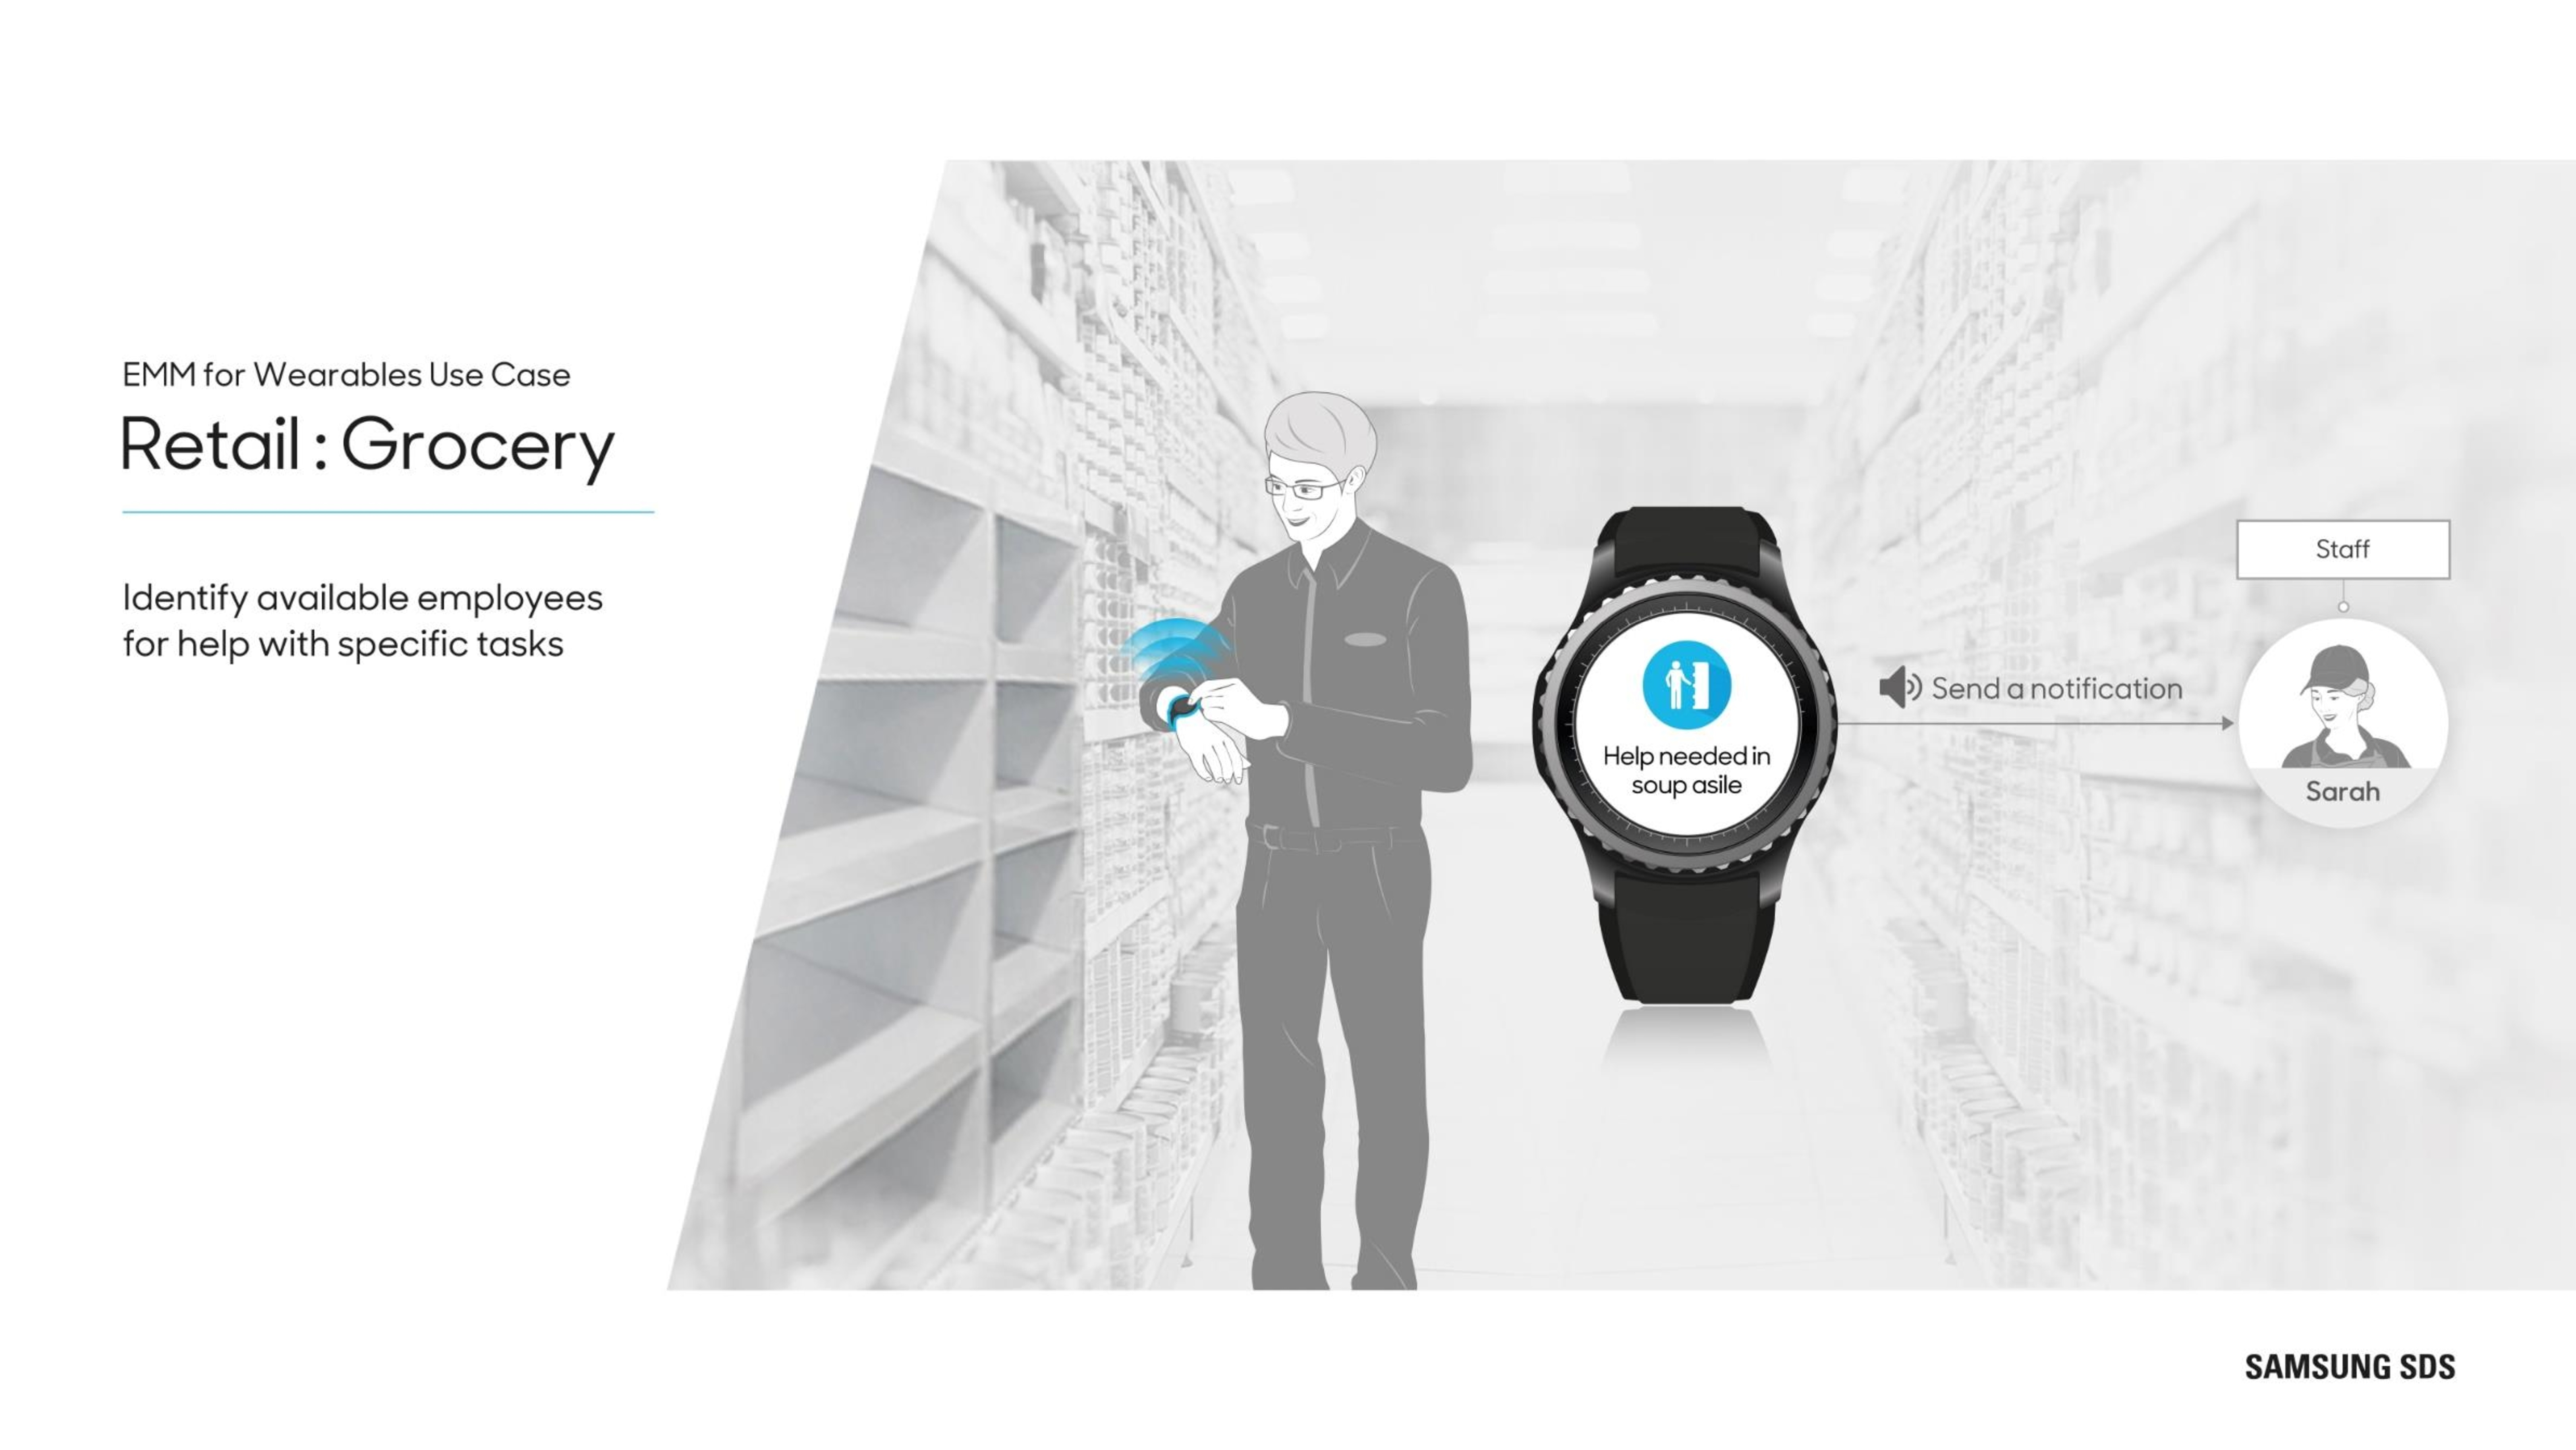 Wearables in Retail Identity available employees for help with specific takes